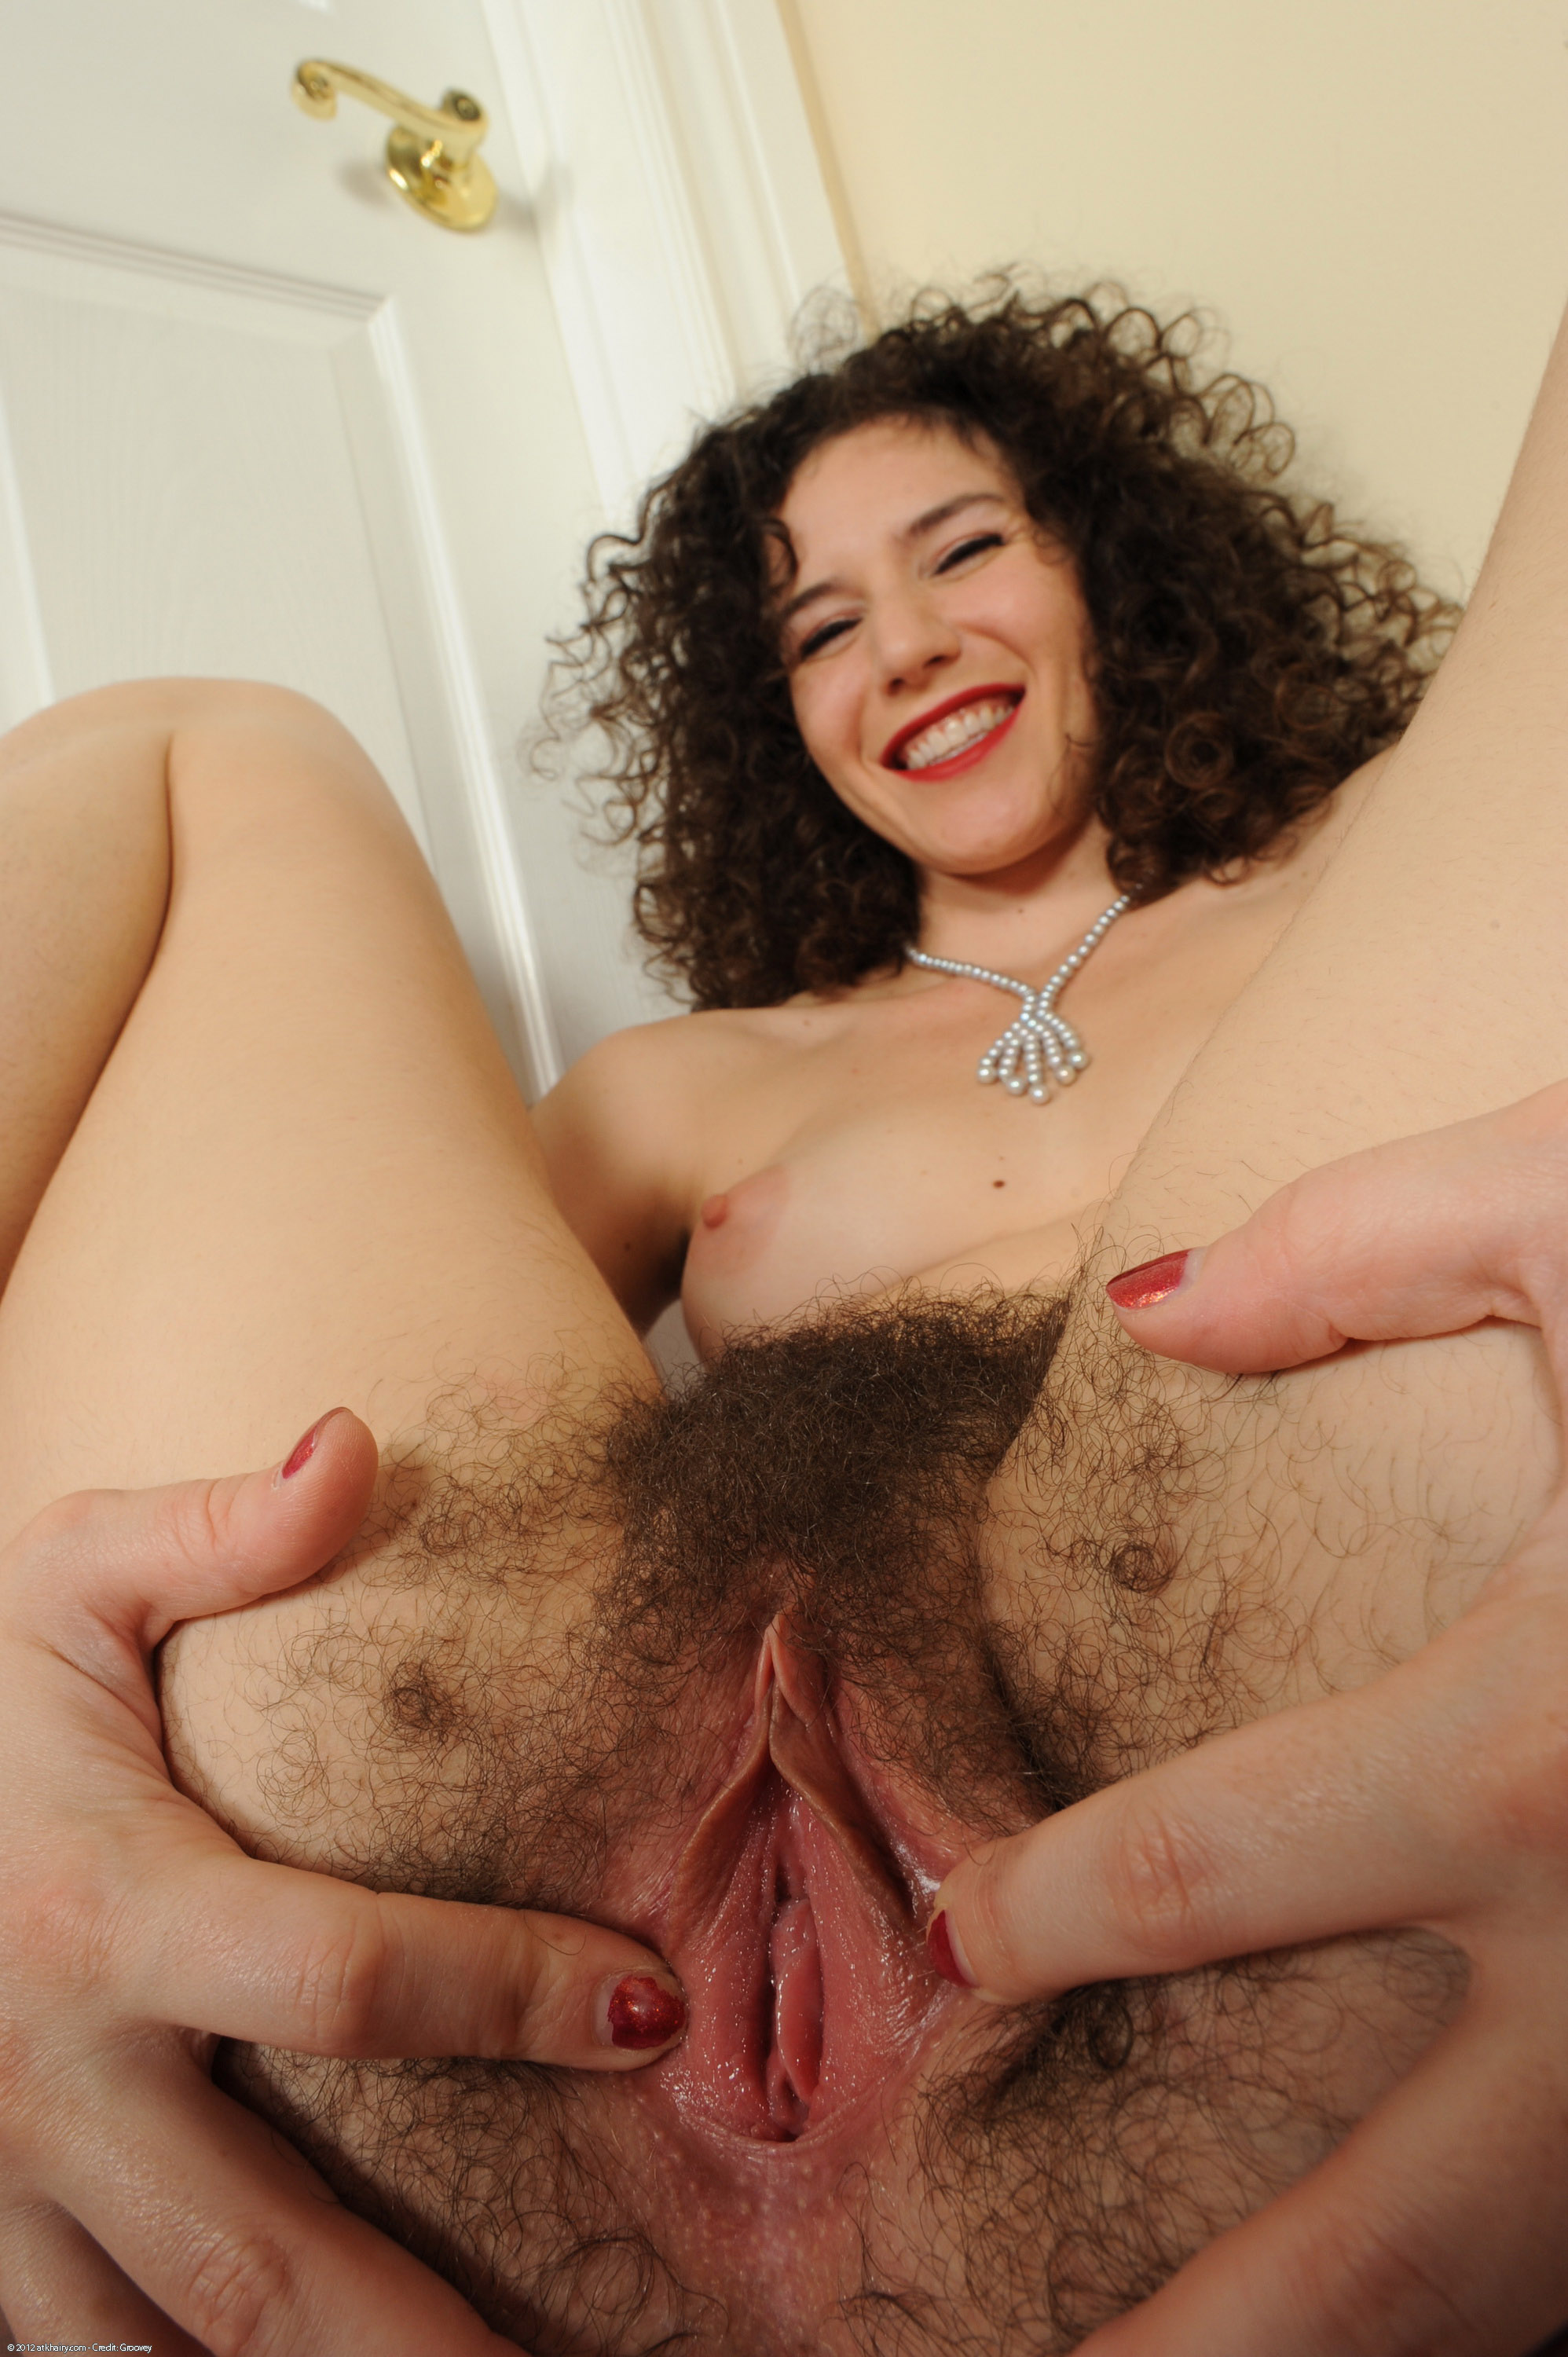 The ideal spread pussy up close hairy porn pictures think